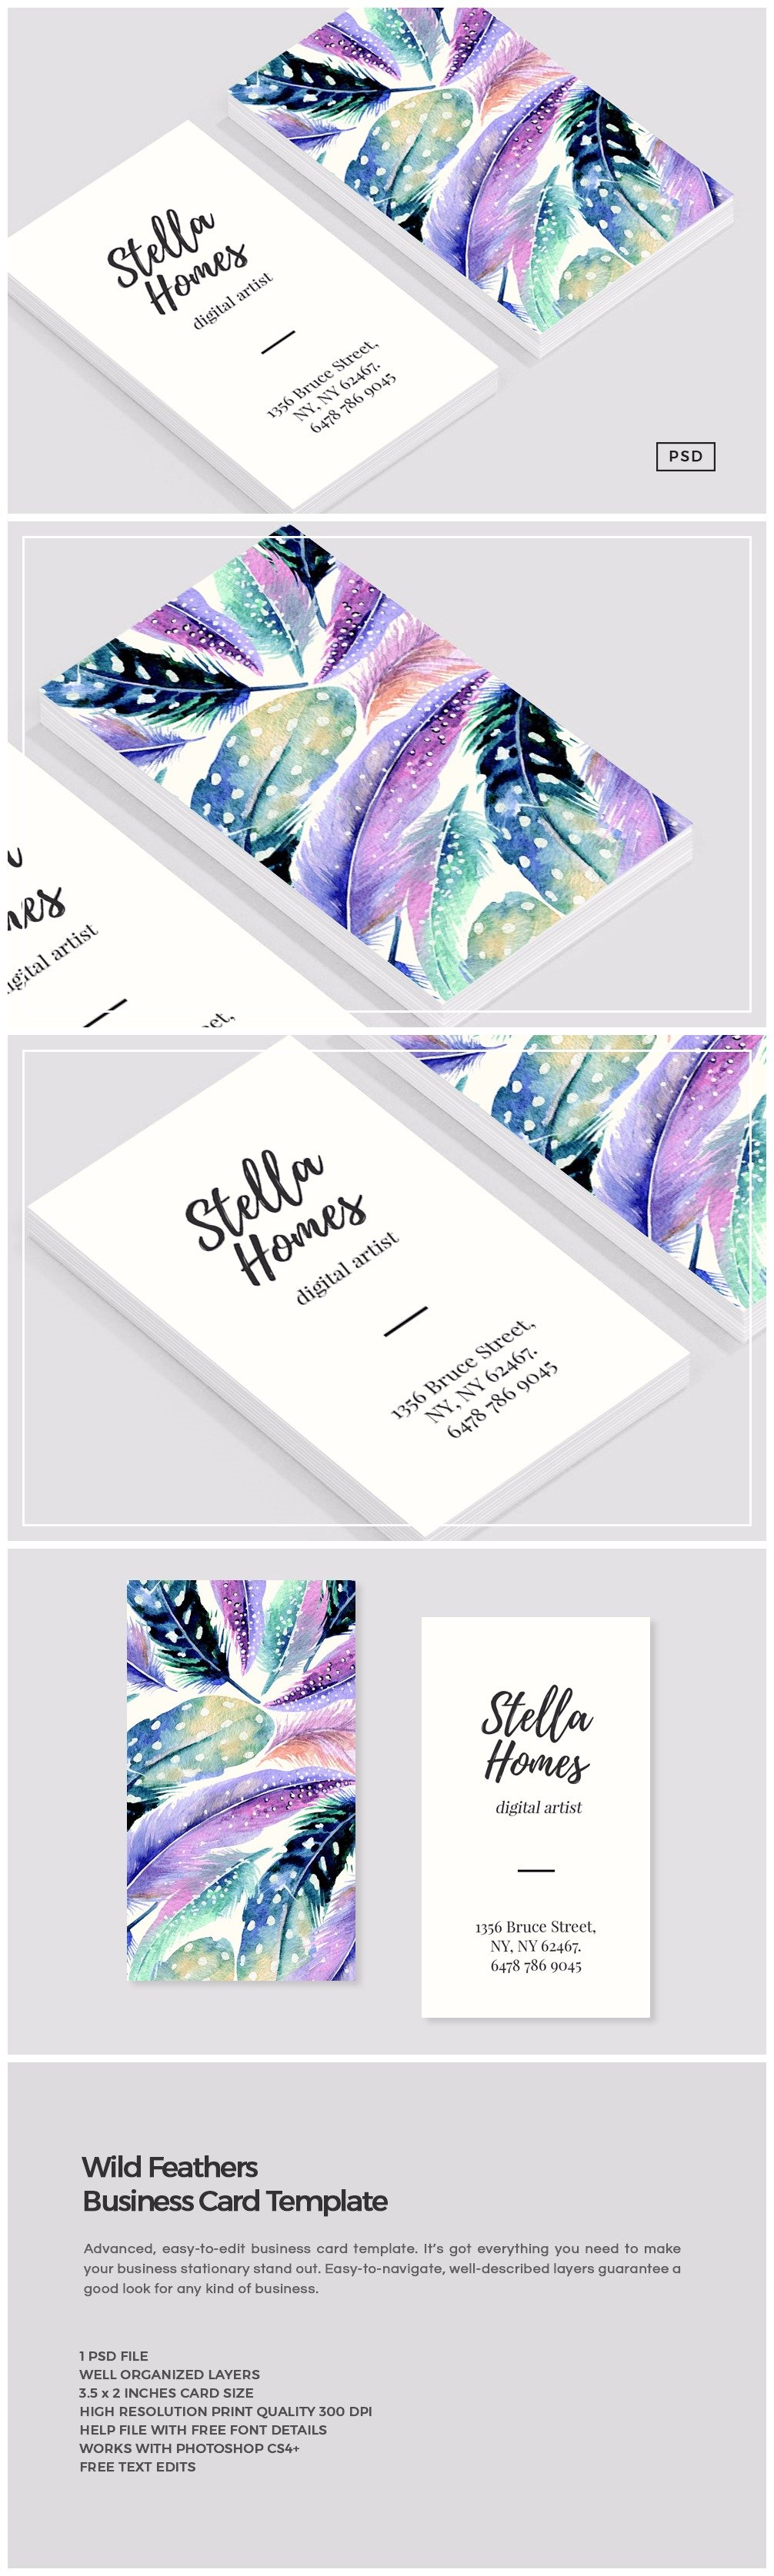 Wild feathers business card template business card templates wild feathers business card template business card templates creative market reheart Gallery